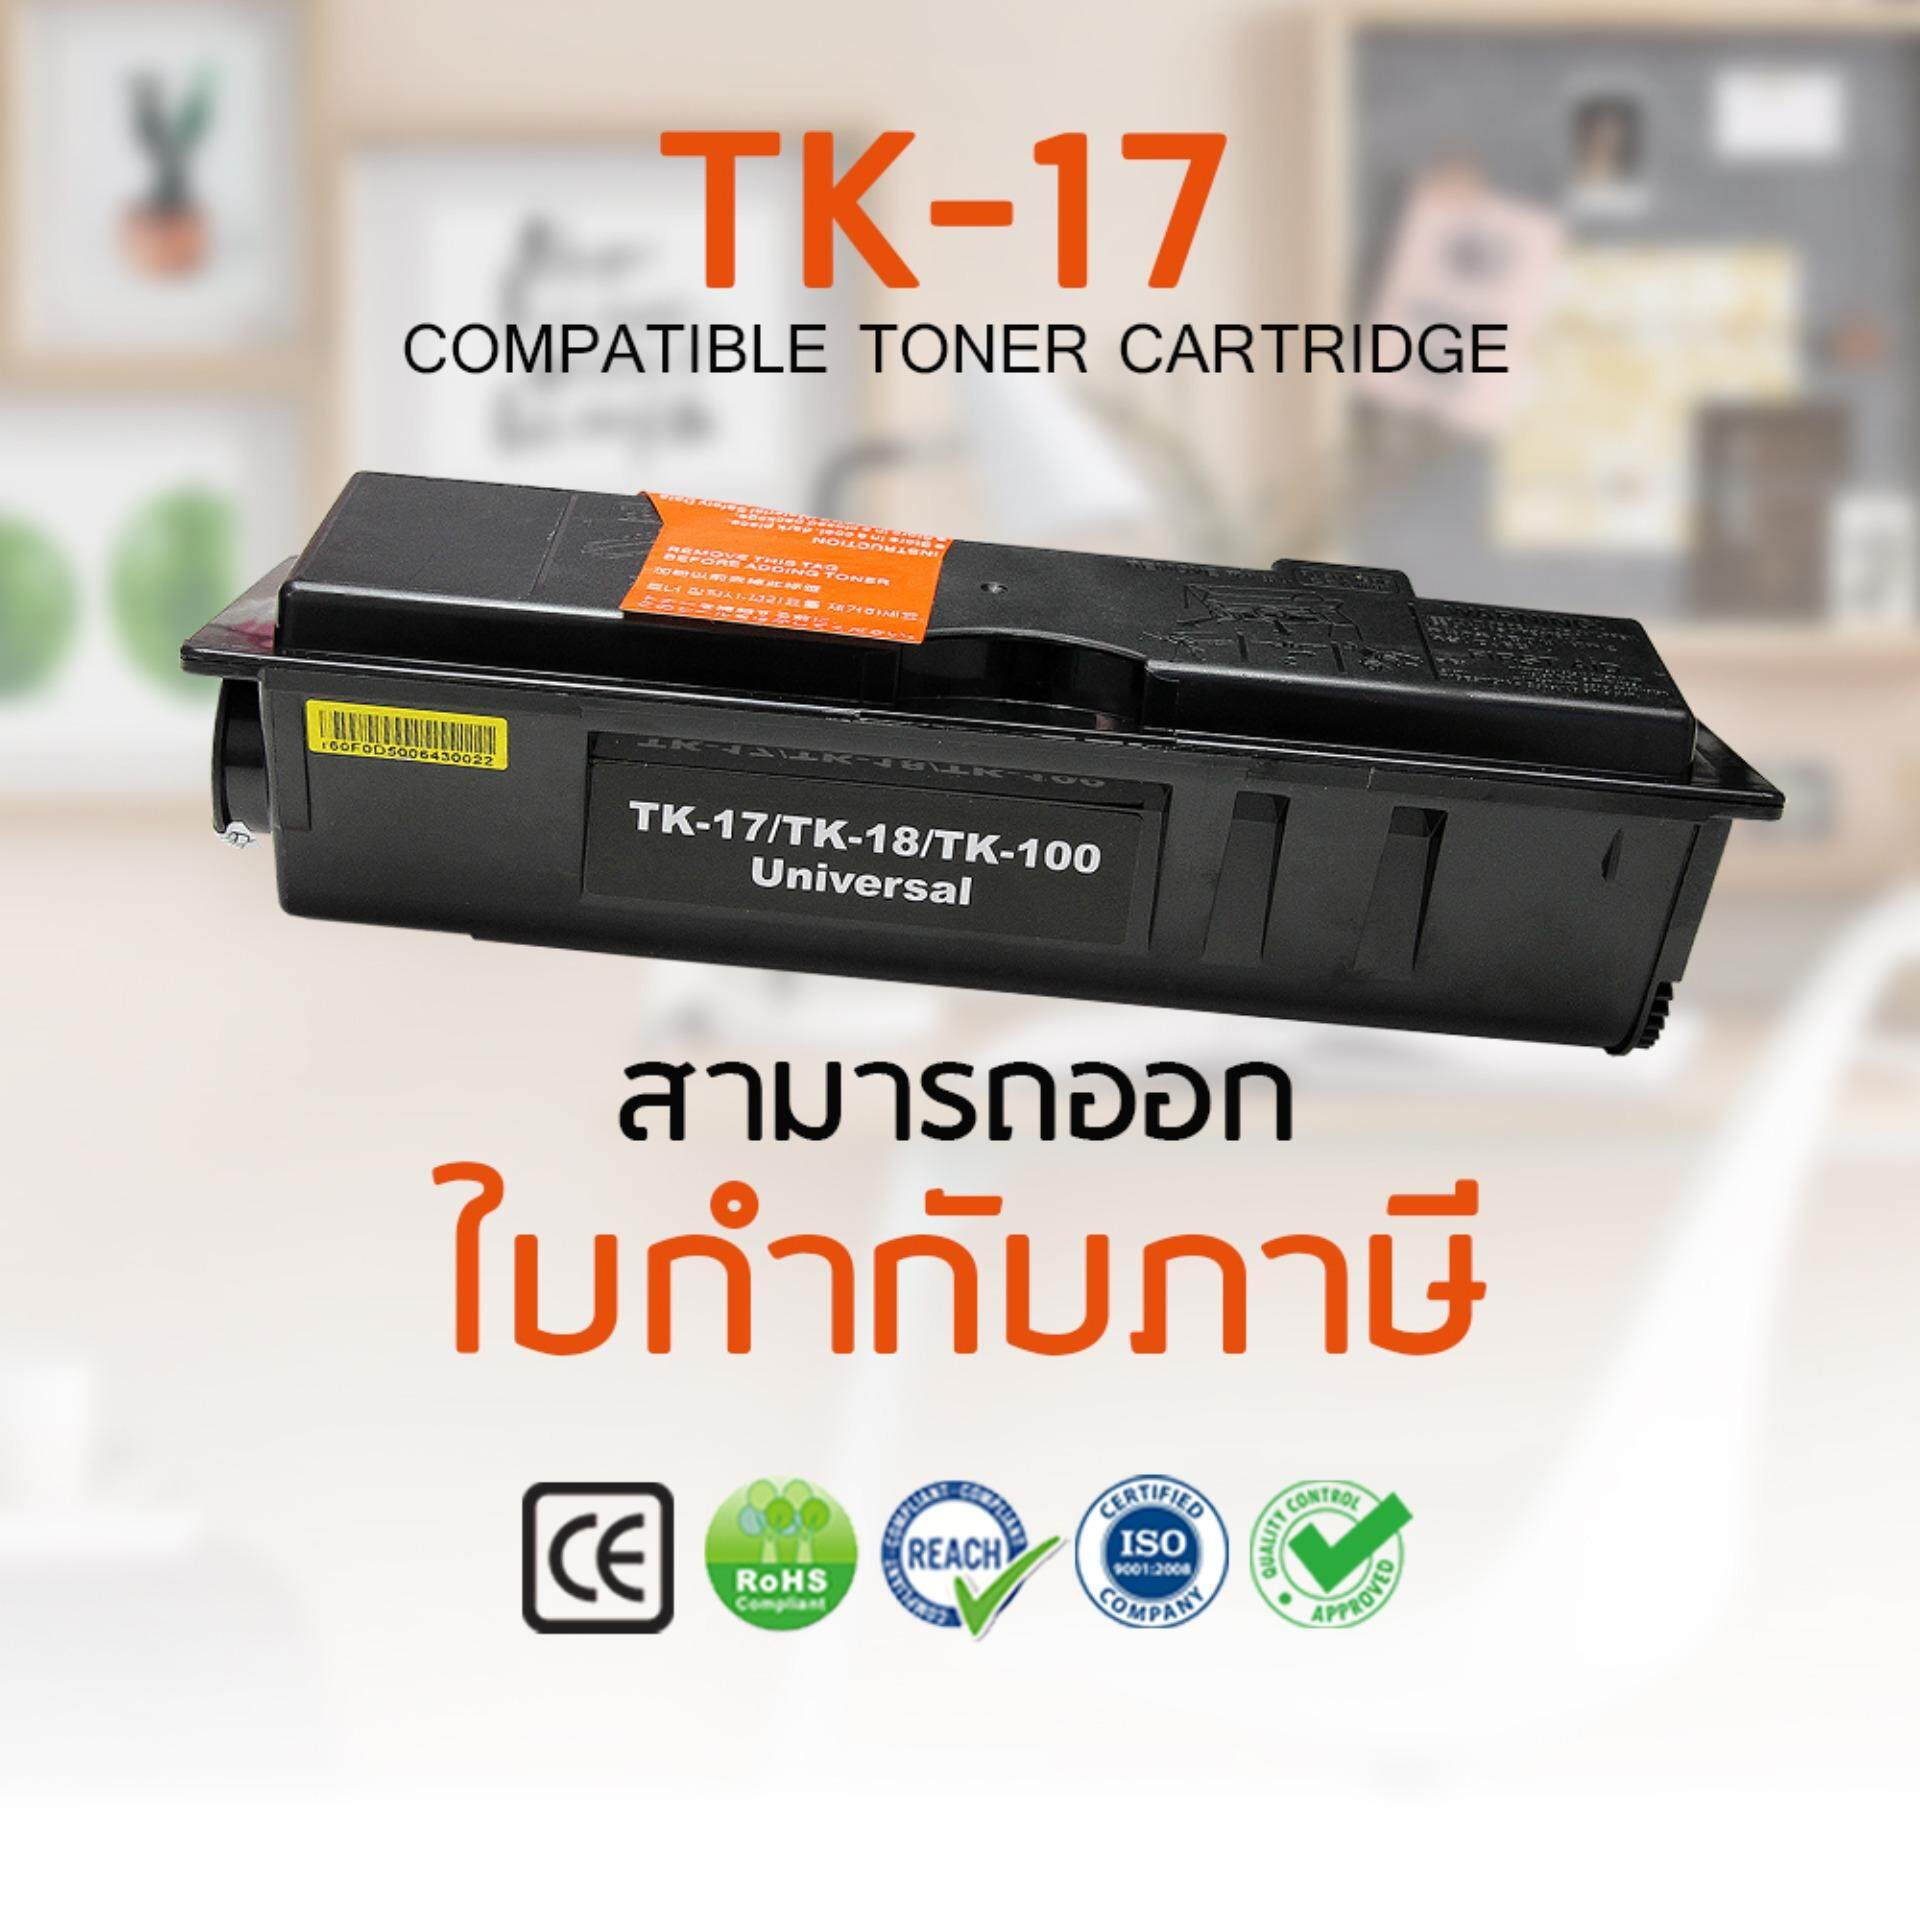 Best 4 U Kyocera TK-17/TK18/TK100 Compatible Laser toner Cartridge Best4U